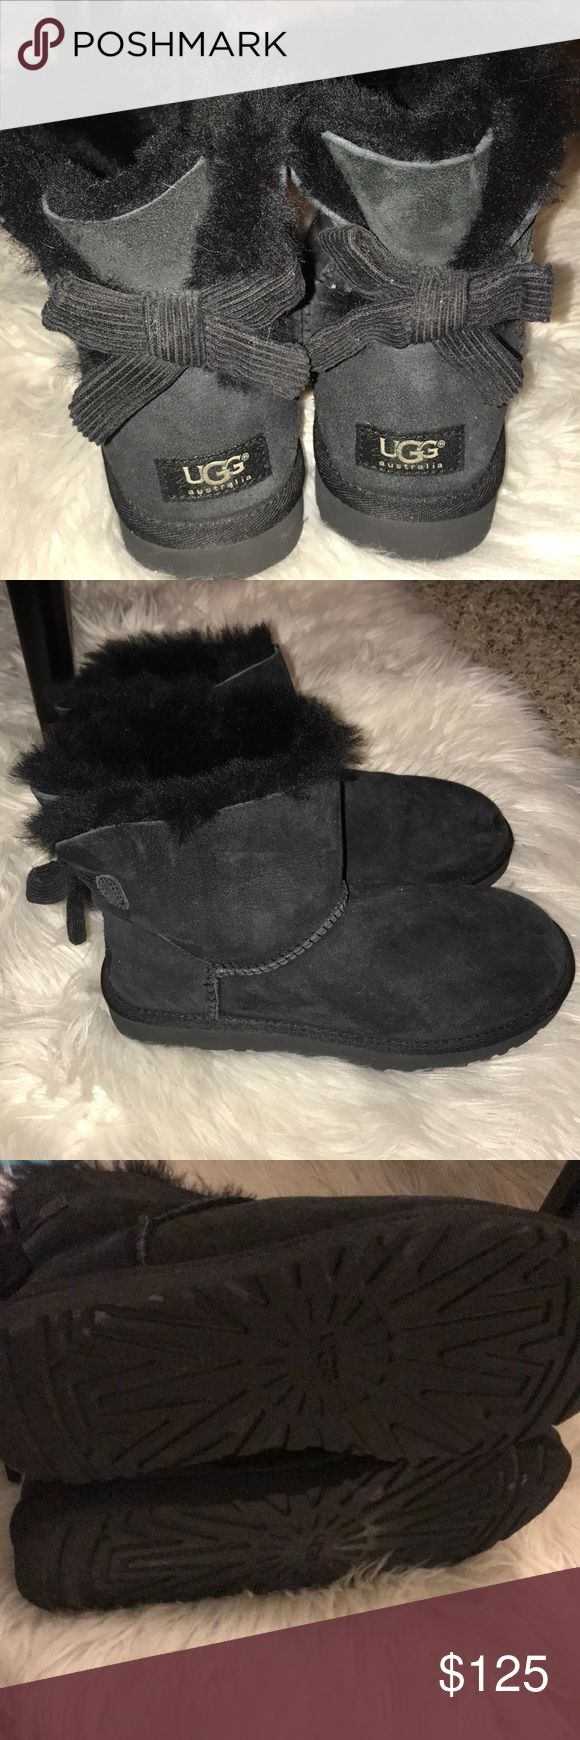 UGG boots! Barely worn. Great shape. Real Ugg's. UGG Shoes Winter & Rain Boots